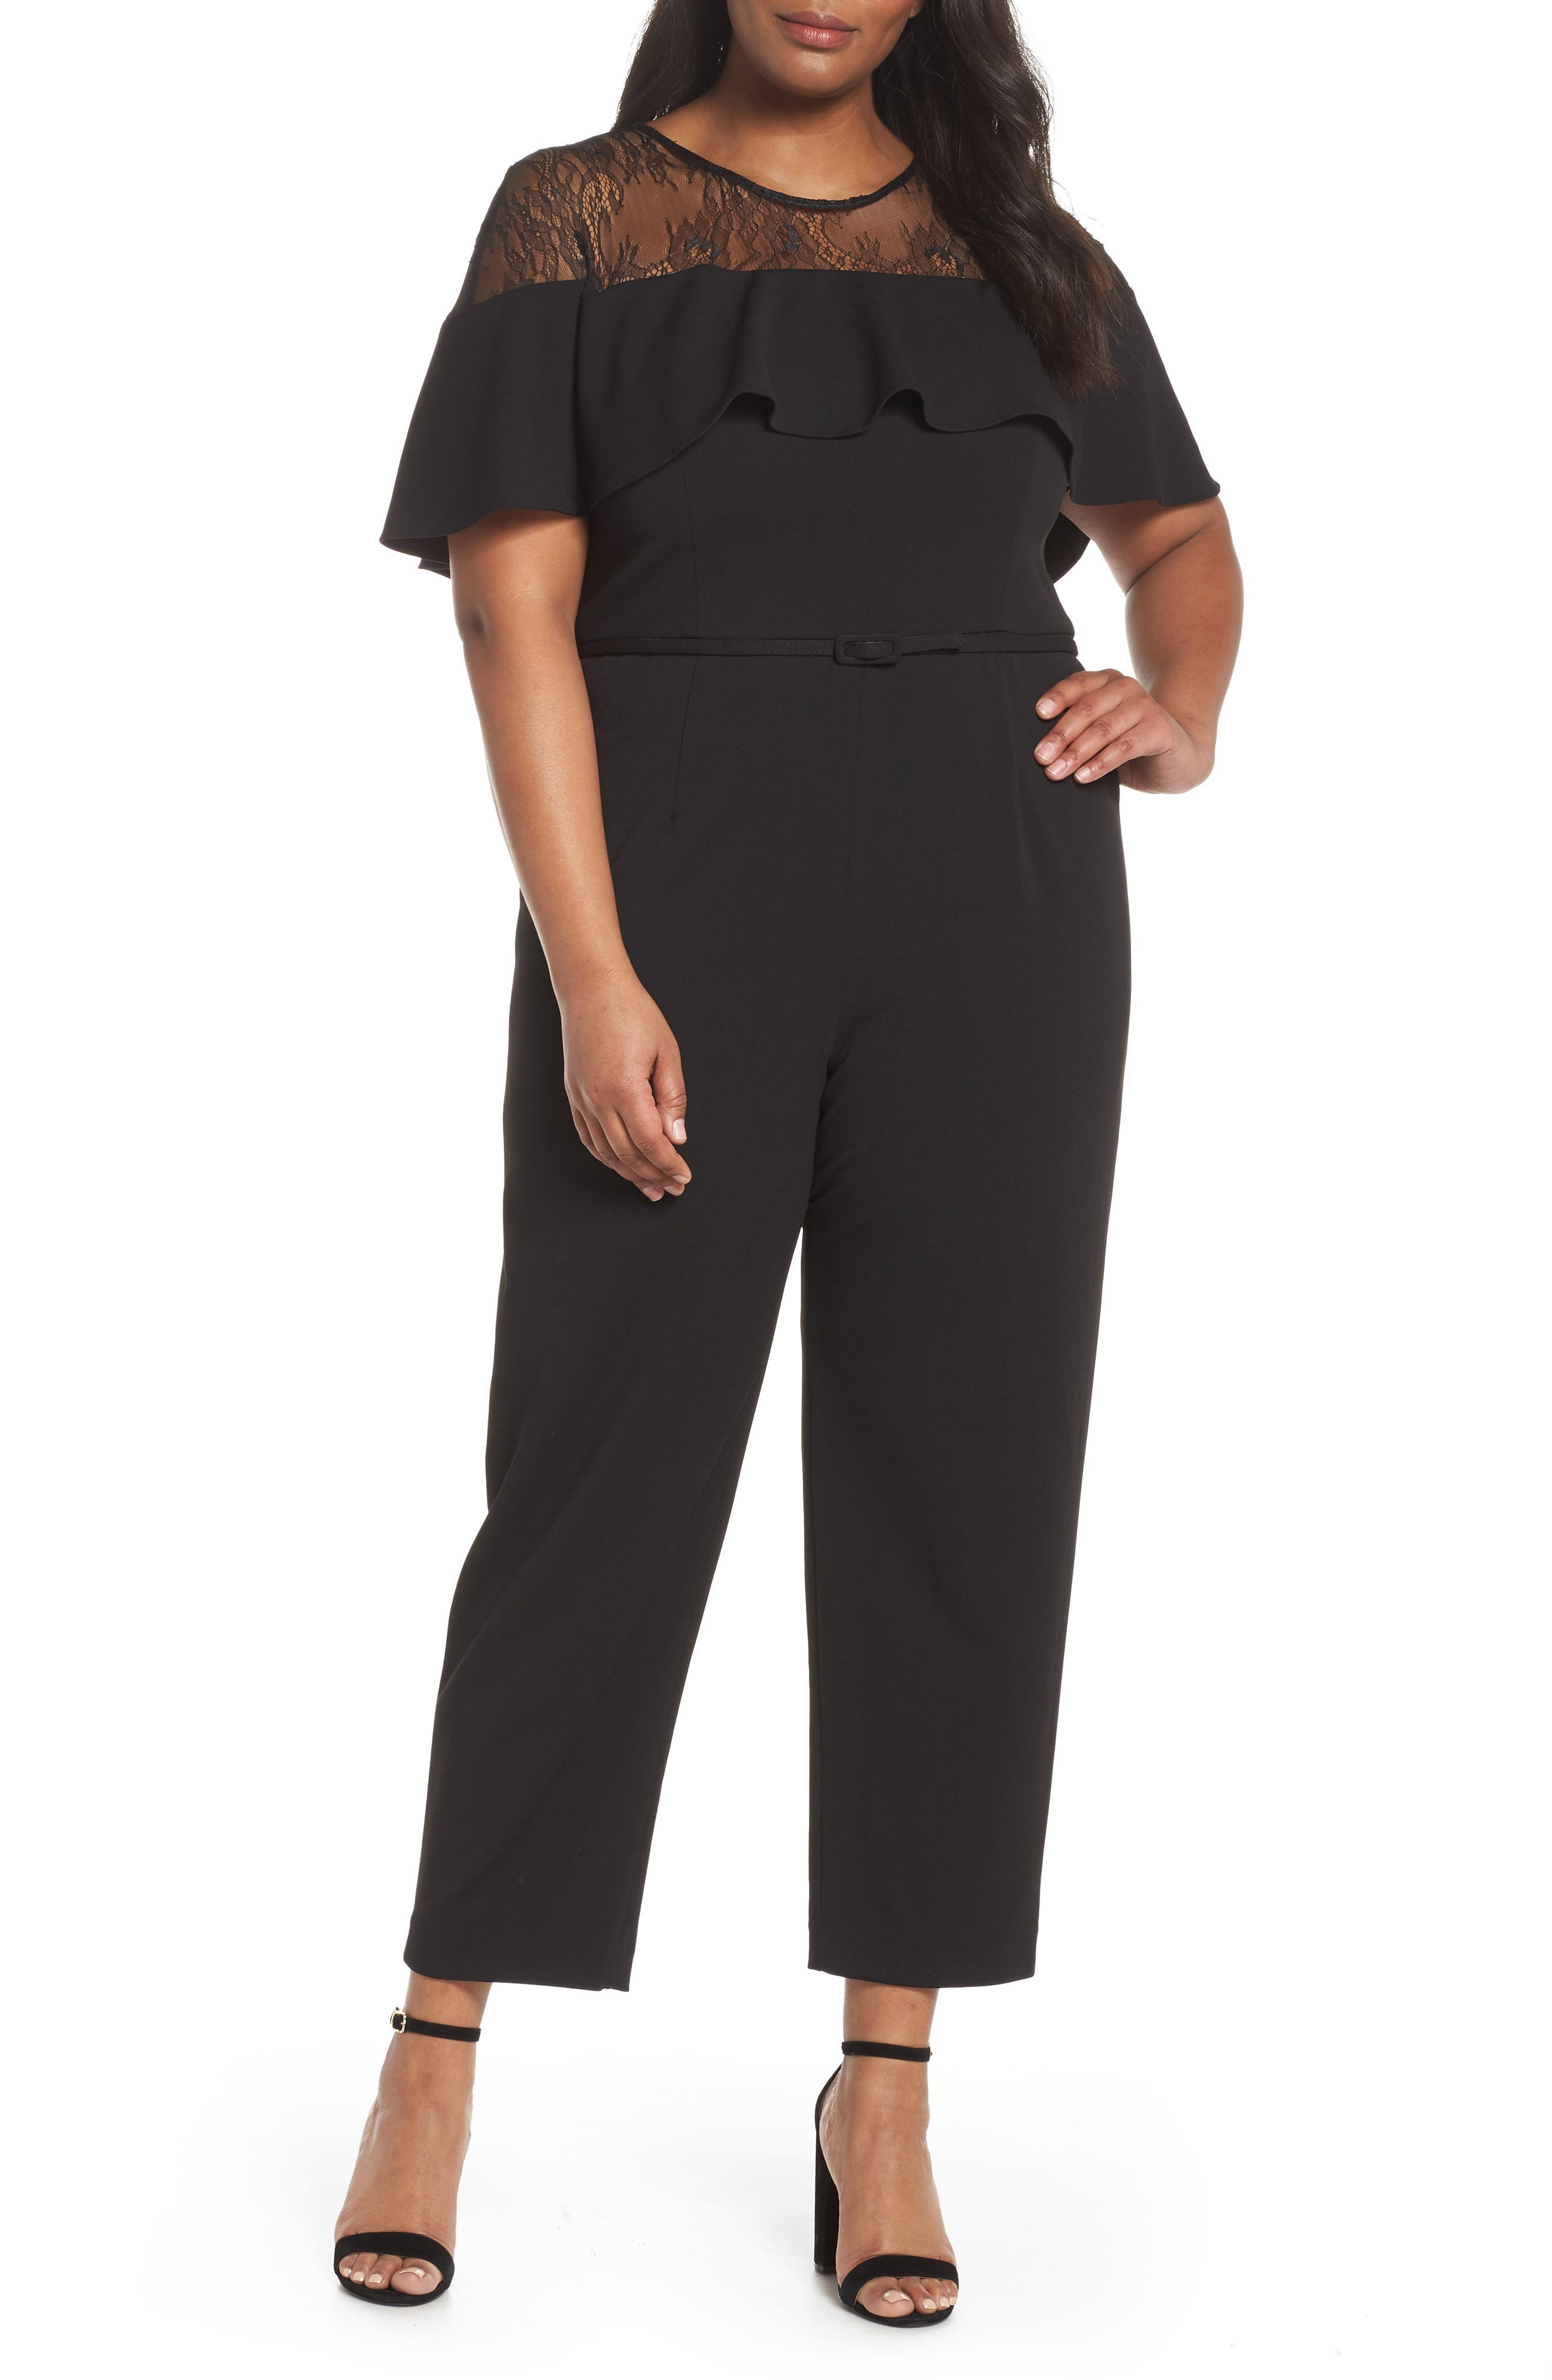 Main Image - Adrianna Papell Lace Illusion Ruffle Jumpsuit (Plus Size)